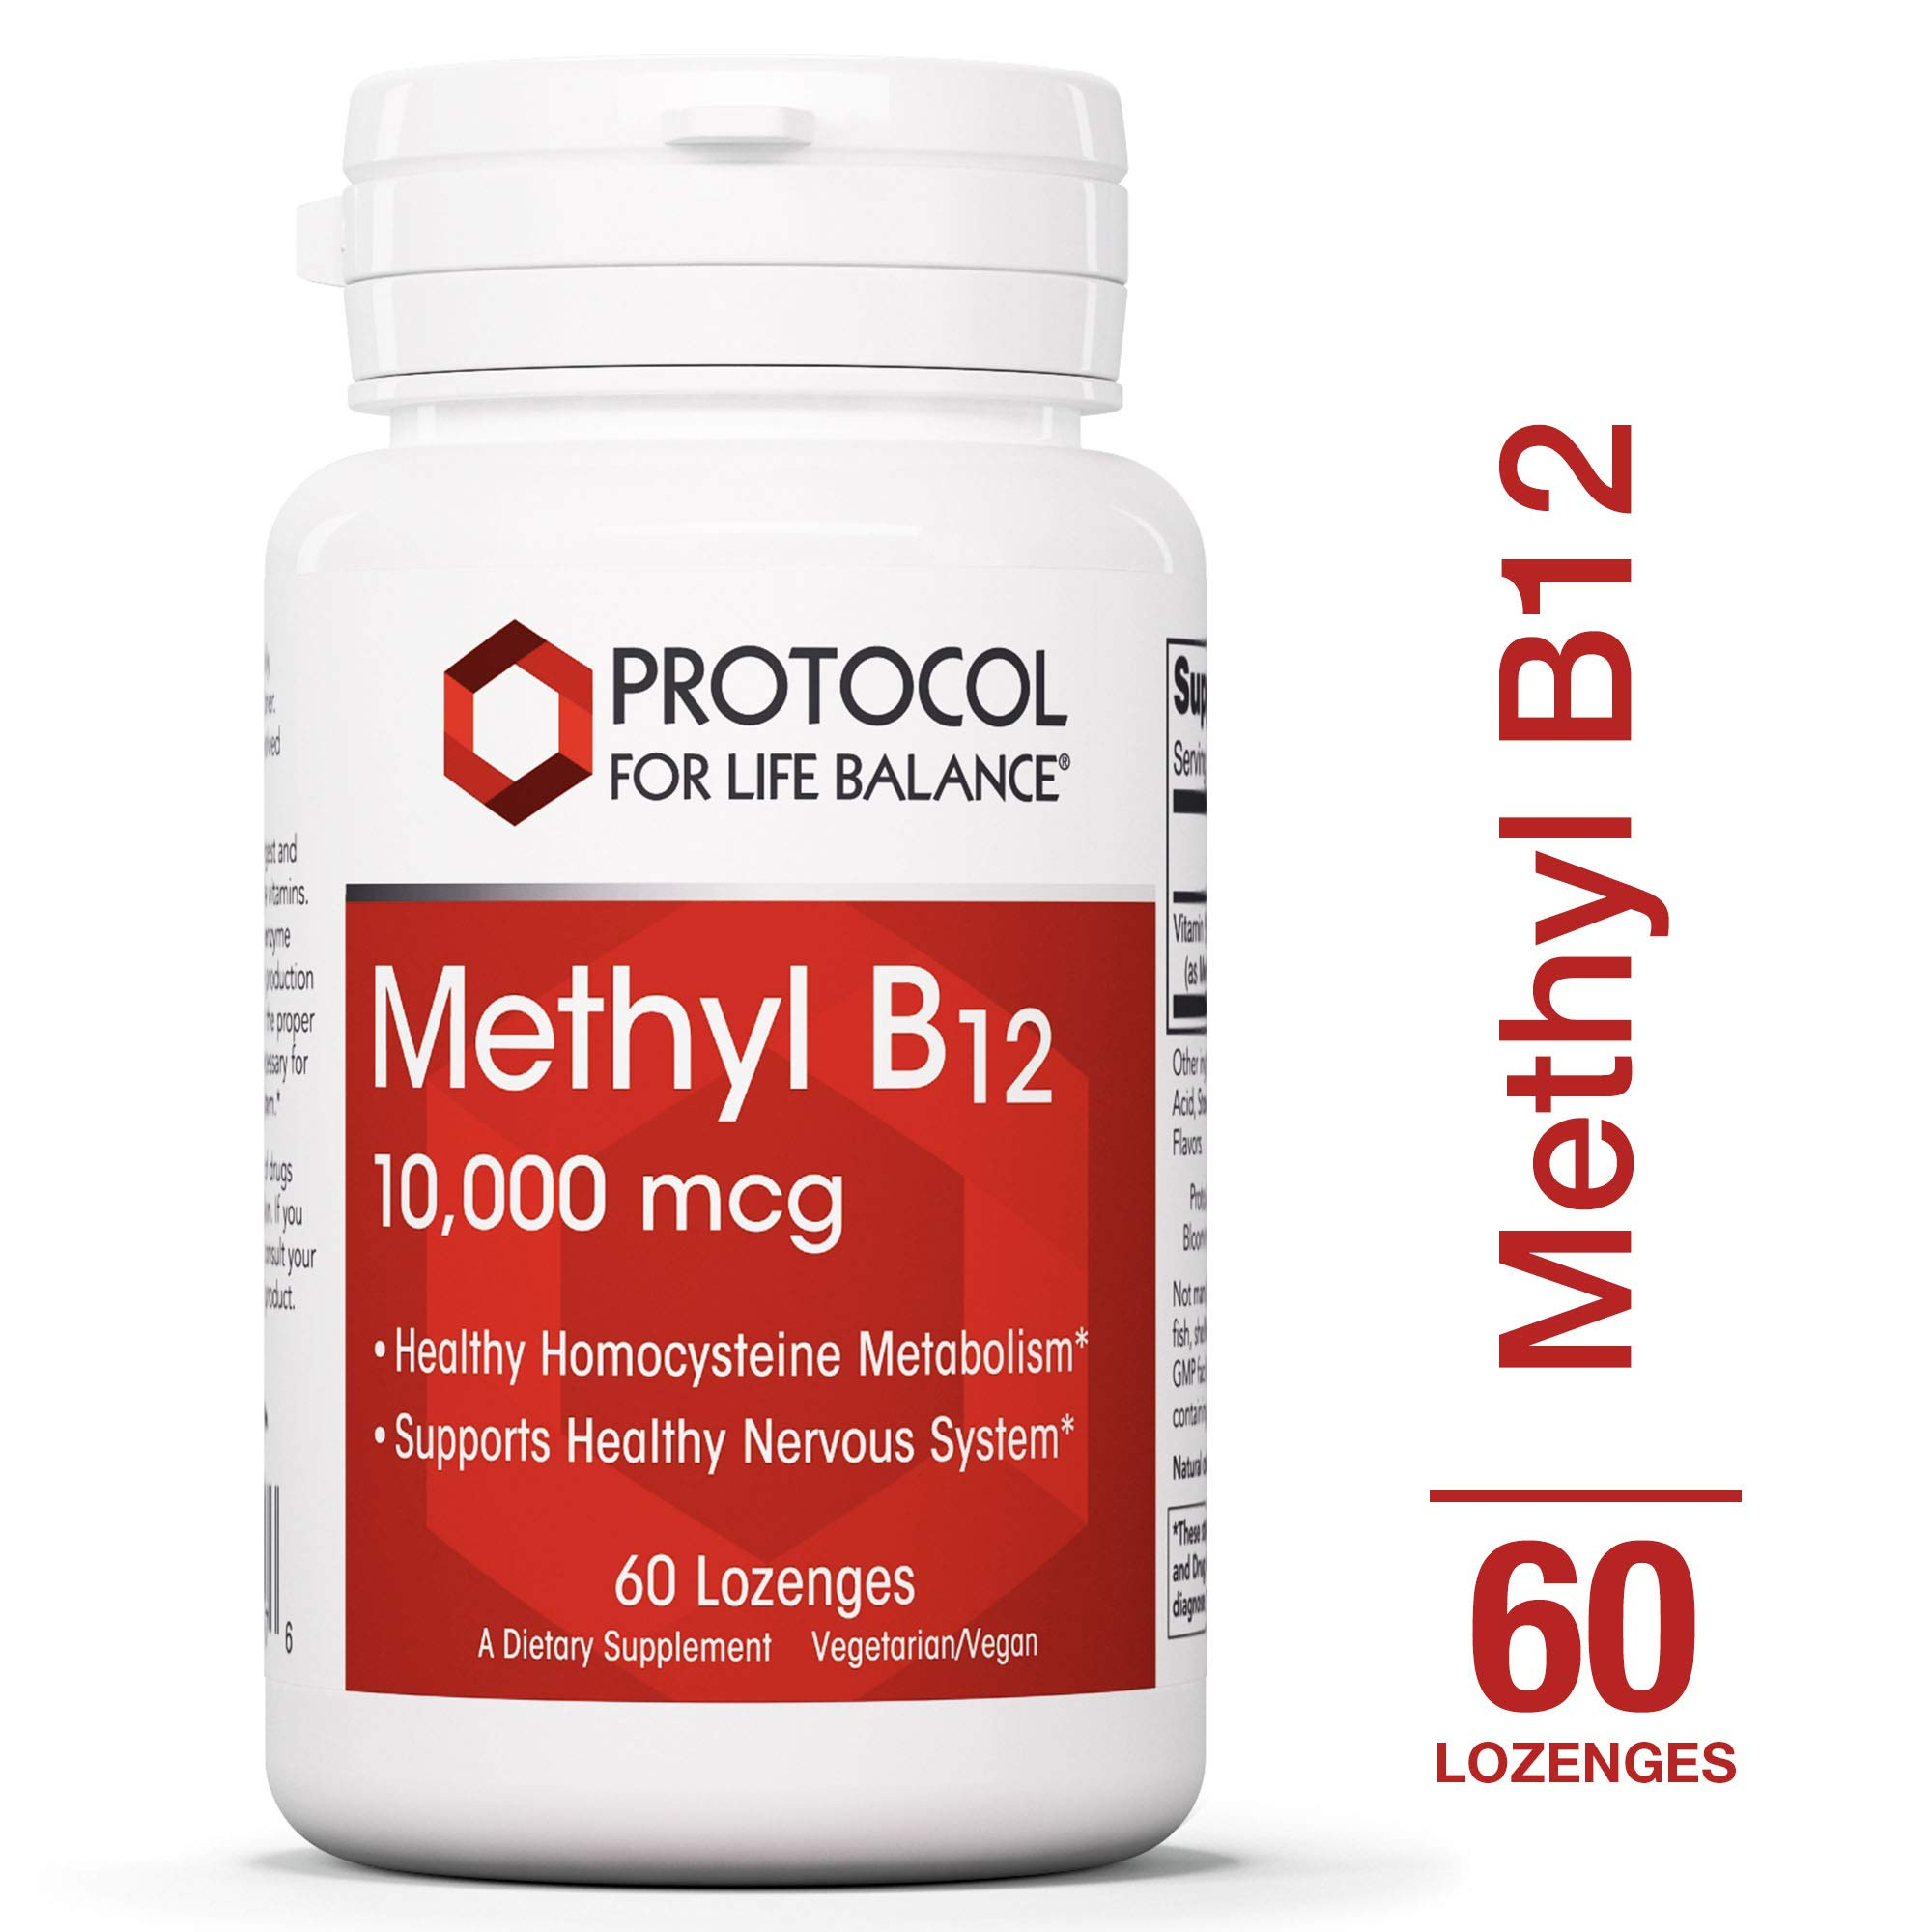 Protocol For Life Balance - Methyl B12 10,000 mcg - Supports Homocysteine Metabolism and Healthy Nervous System, Energy Boost, Cognitive Function, & Digestive System - 60 Lozenges